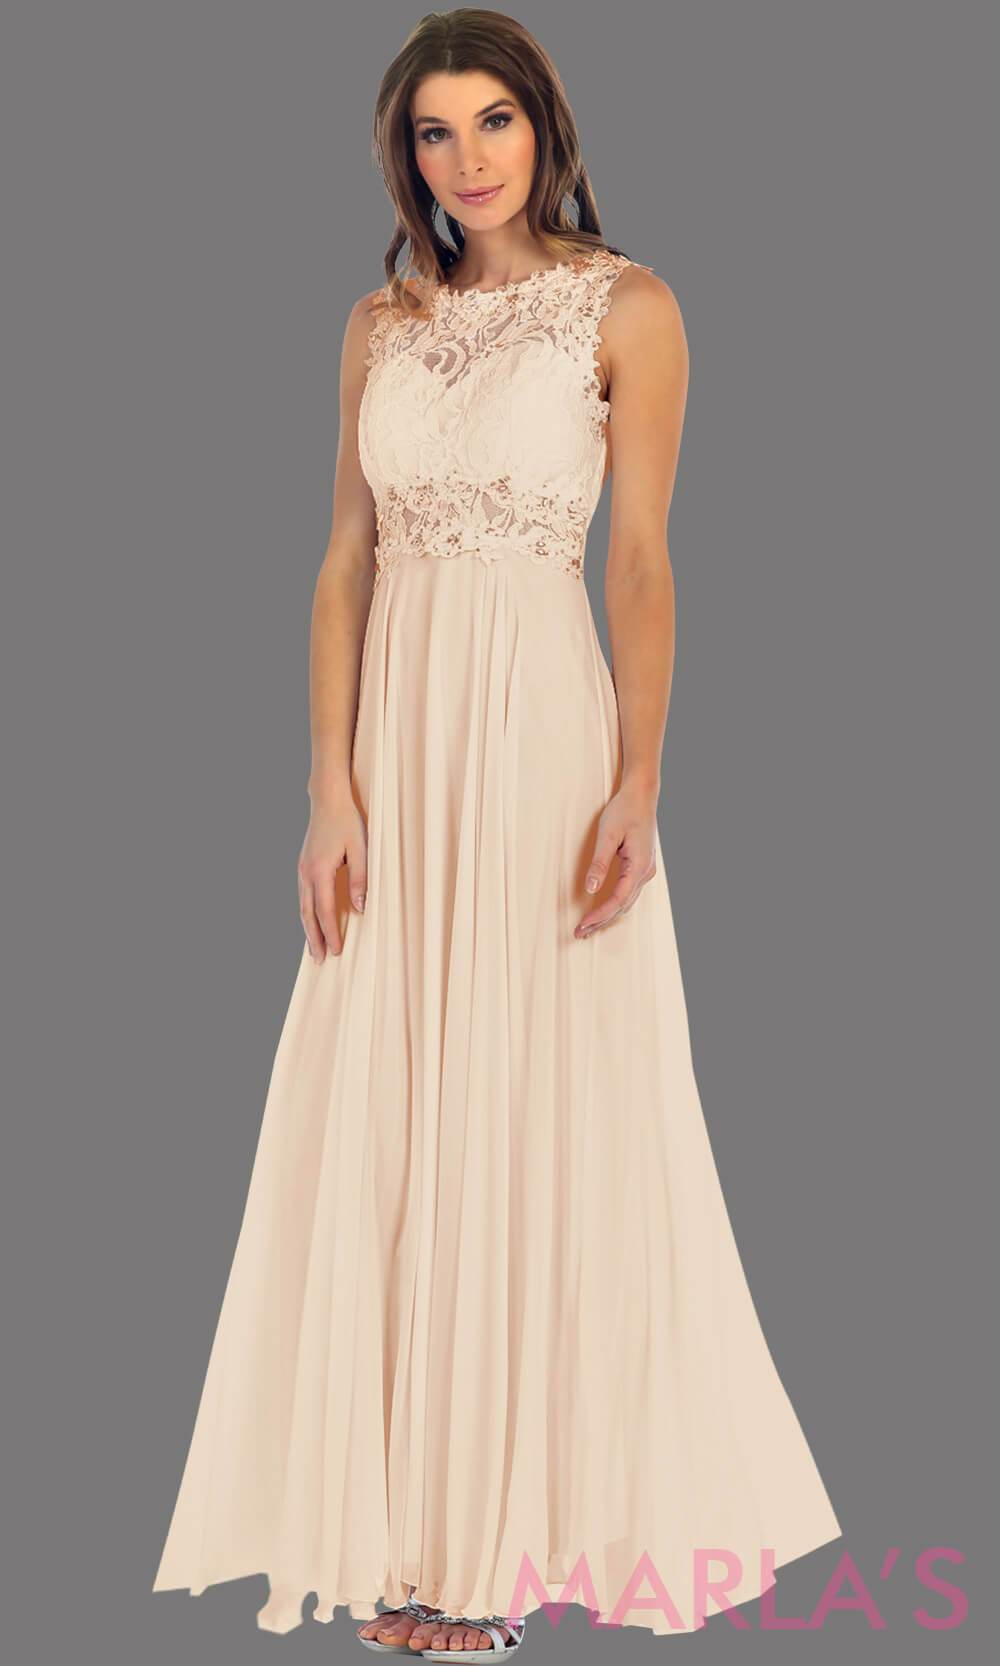 Long champagne flowy dress with high neck. The lace bodice flows into a flowy chiffon skrit. It has a centred back zip and is perfect for simple prom dress, pink wedding guest dress, or party dress. Available in plus sizes